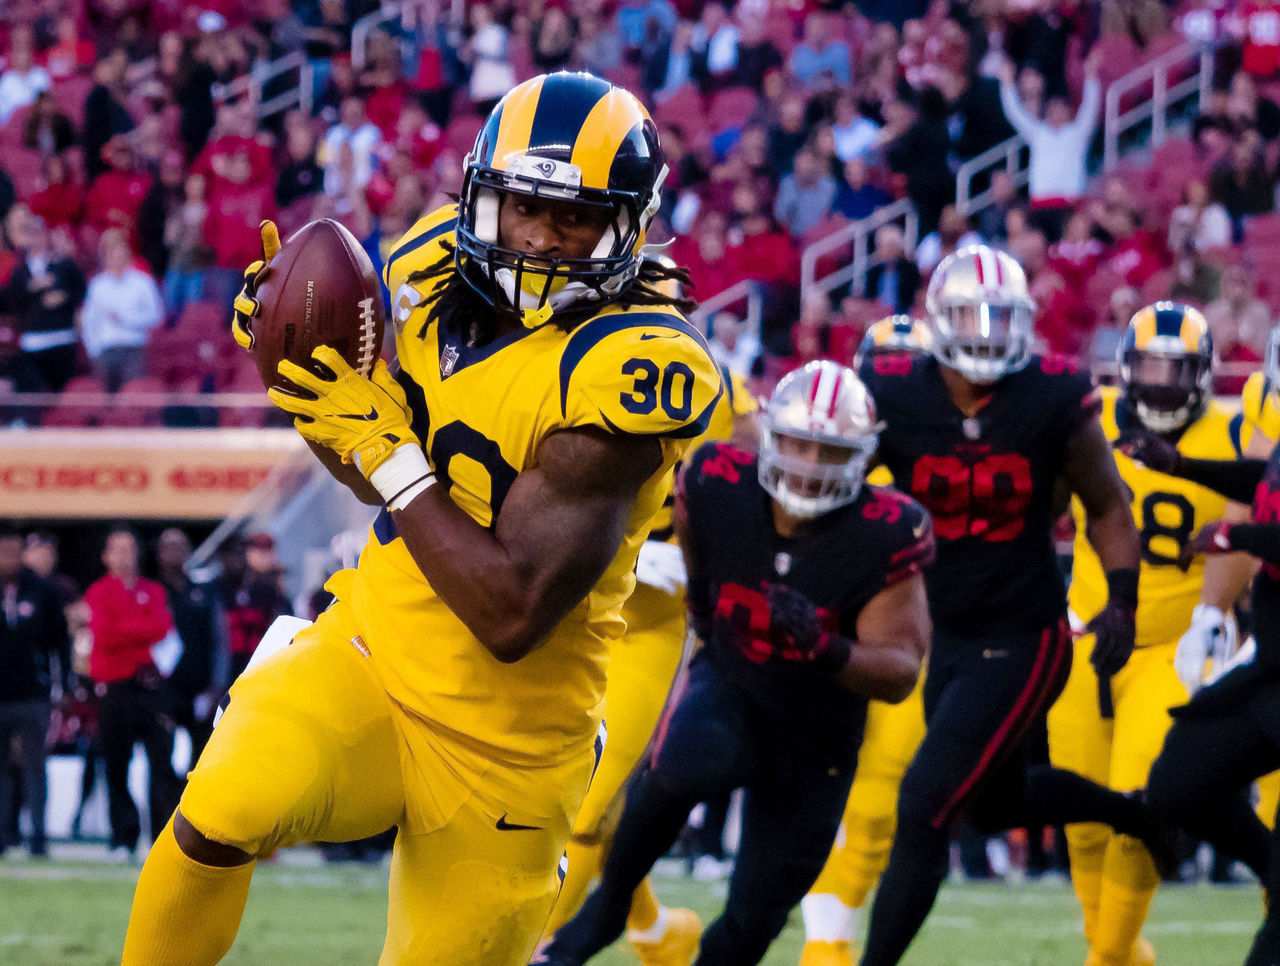 Cropped 2017 09 22t020611z 1142987739 nocid rtrmadp 3 nfl los angeles rams at san francisco 49ers